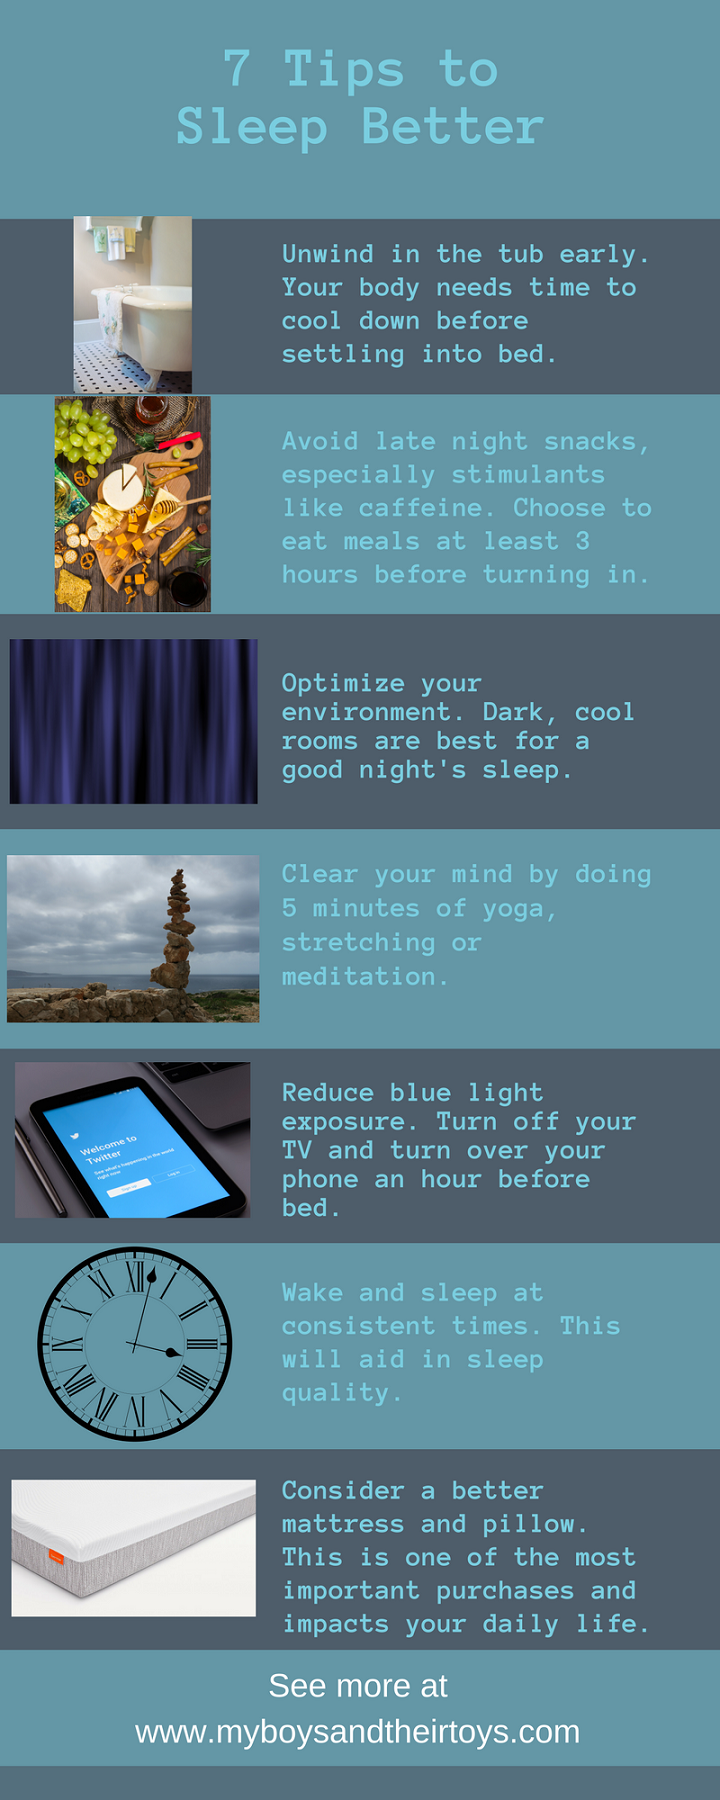 7 tips to sleep better